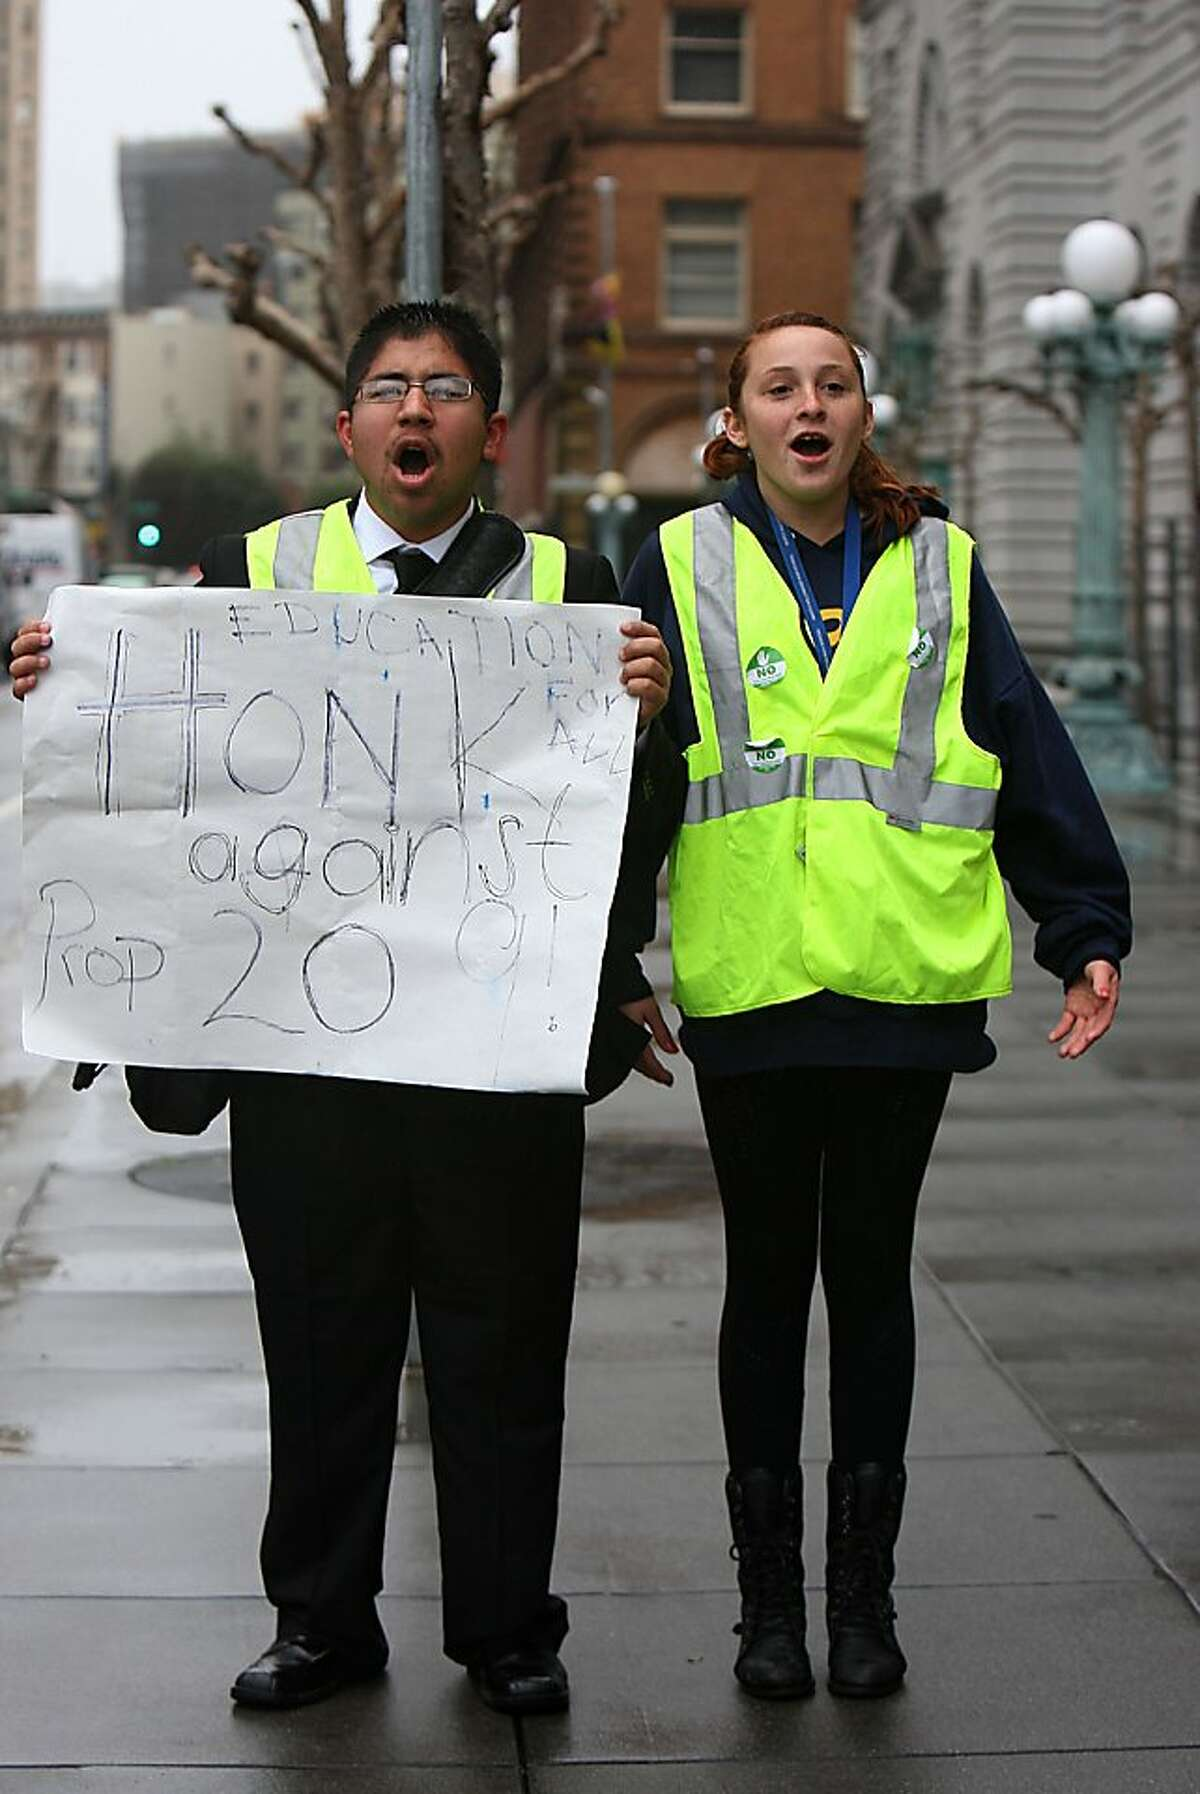 UC Berkeley students Juan M. Heredia (left) and Karly Behncke (right) protesting in front of the Ninth U.S. Circuit Court of Appeals in San Francisco, Calif., on Monday, February 13, 2011. The court is hearing a new lawsuit challenging Proposition 209, the 1996 initiative that banned affirmative action based on race or sex in state and local government employment and education.